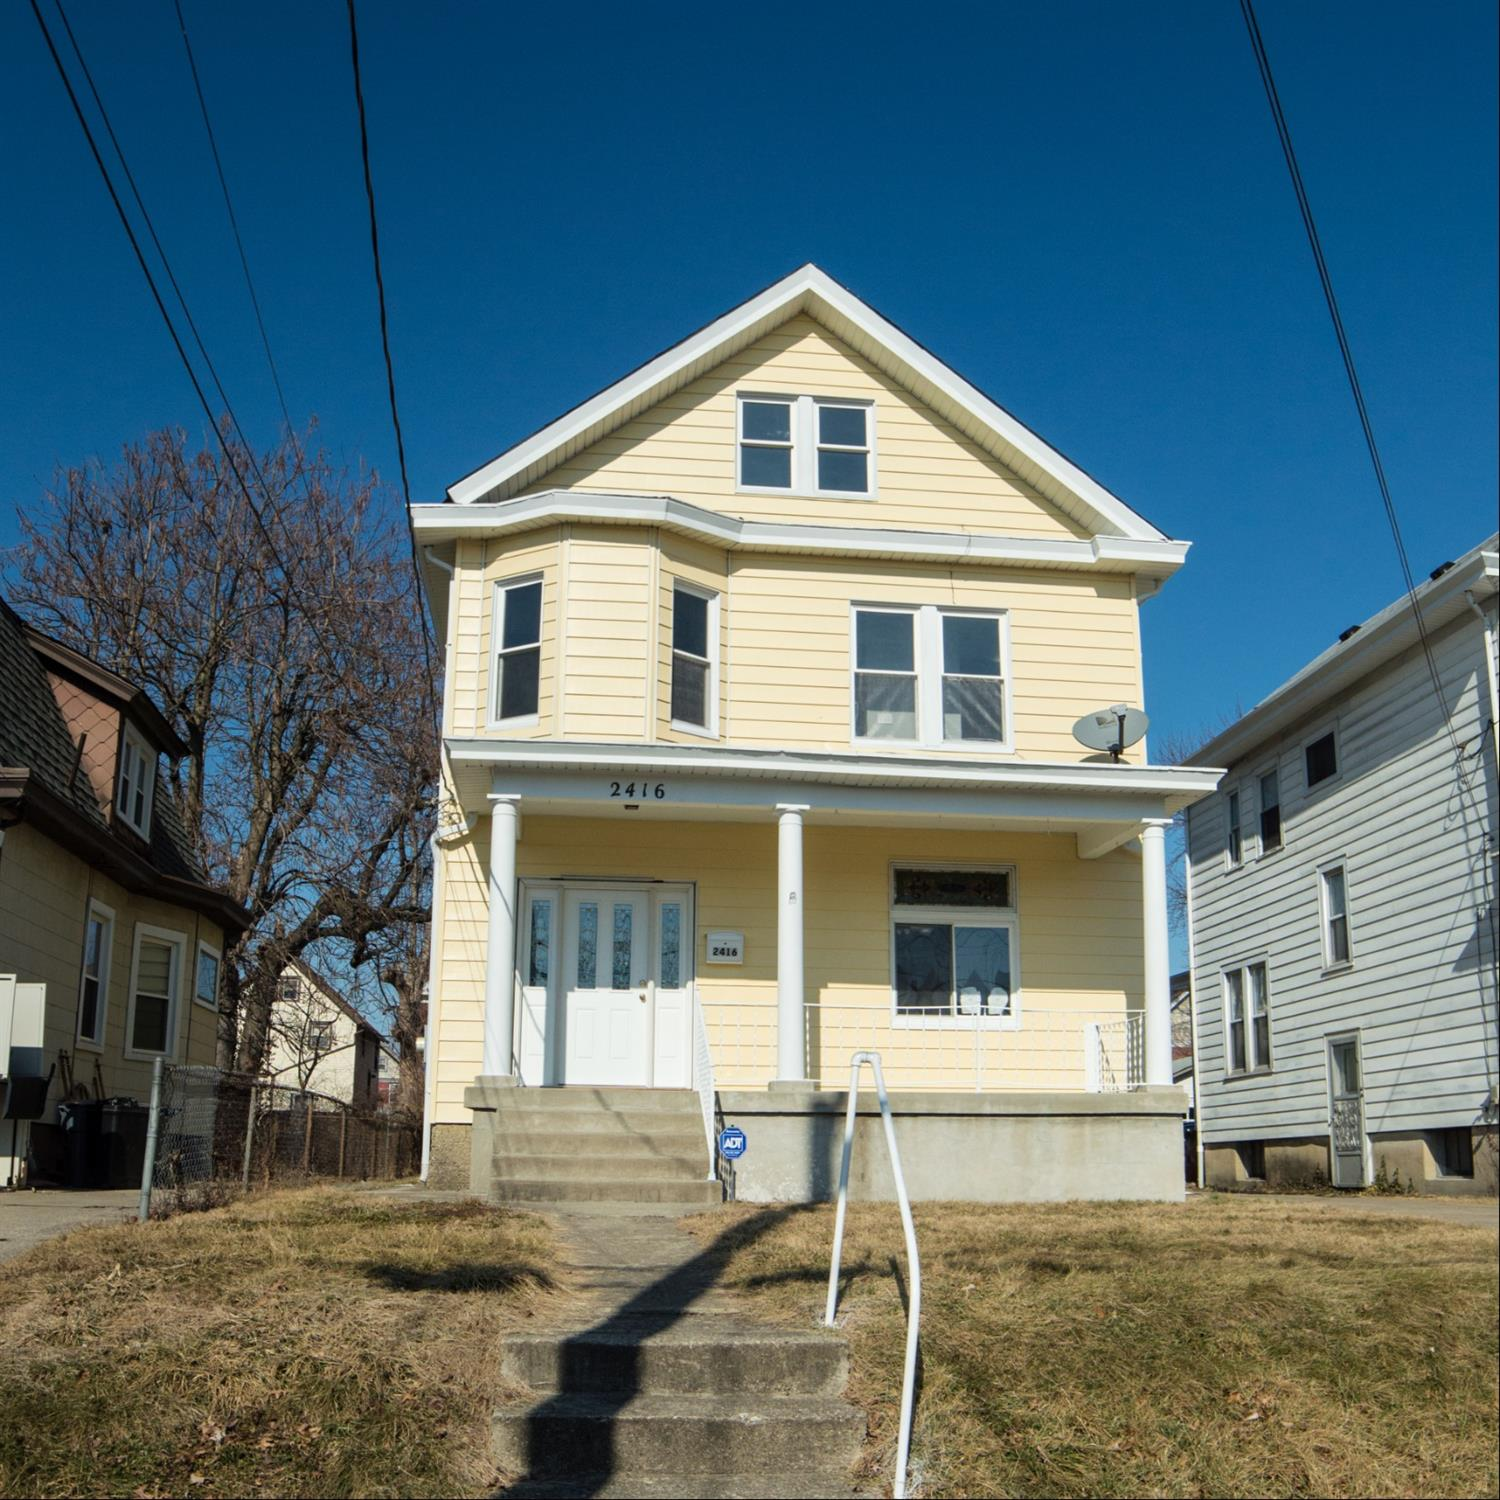 Property for sale at 2416 Robertson Avenue, Norwood,  OH 45212